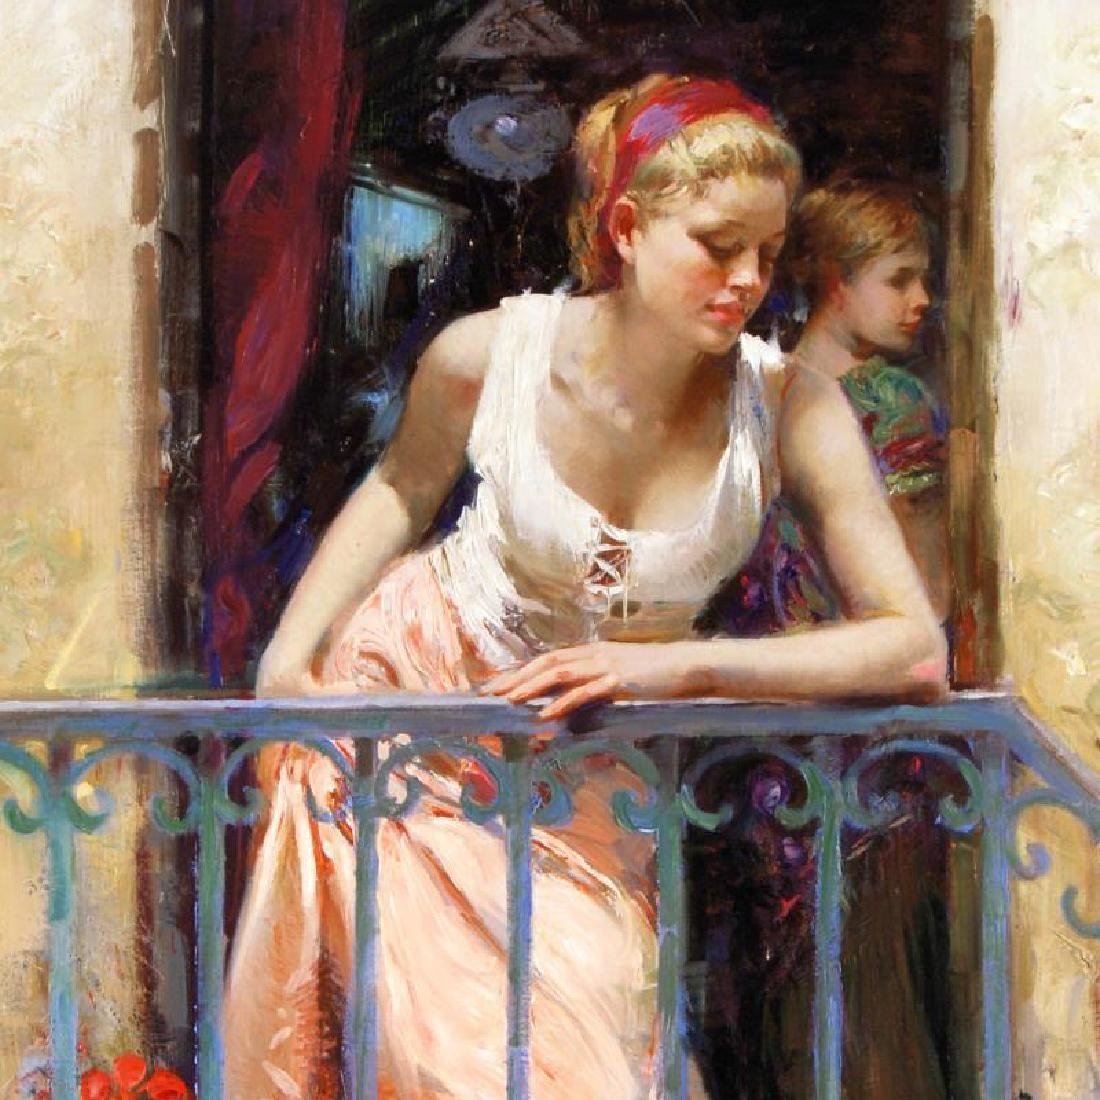 At the Balcony by Pino (1939-2010) - 2